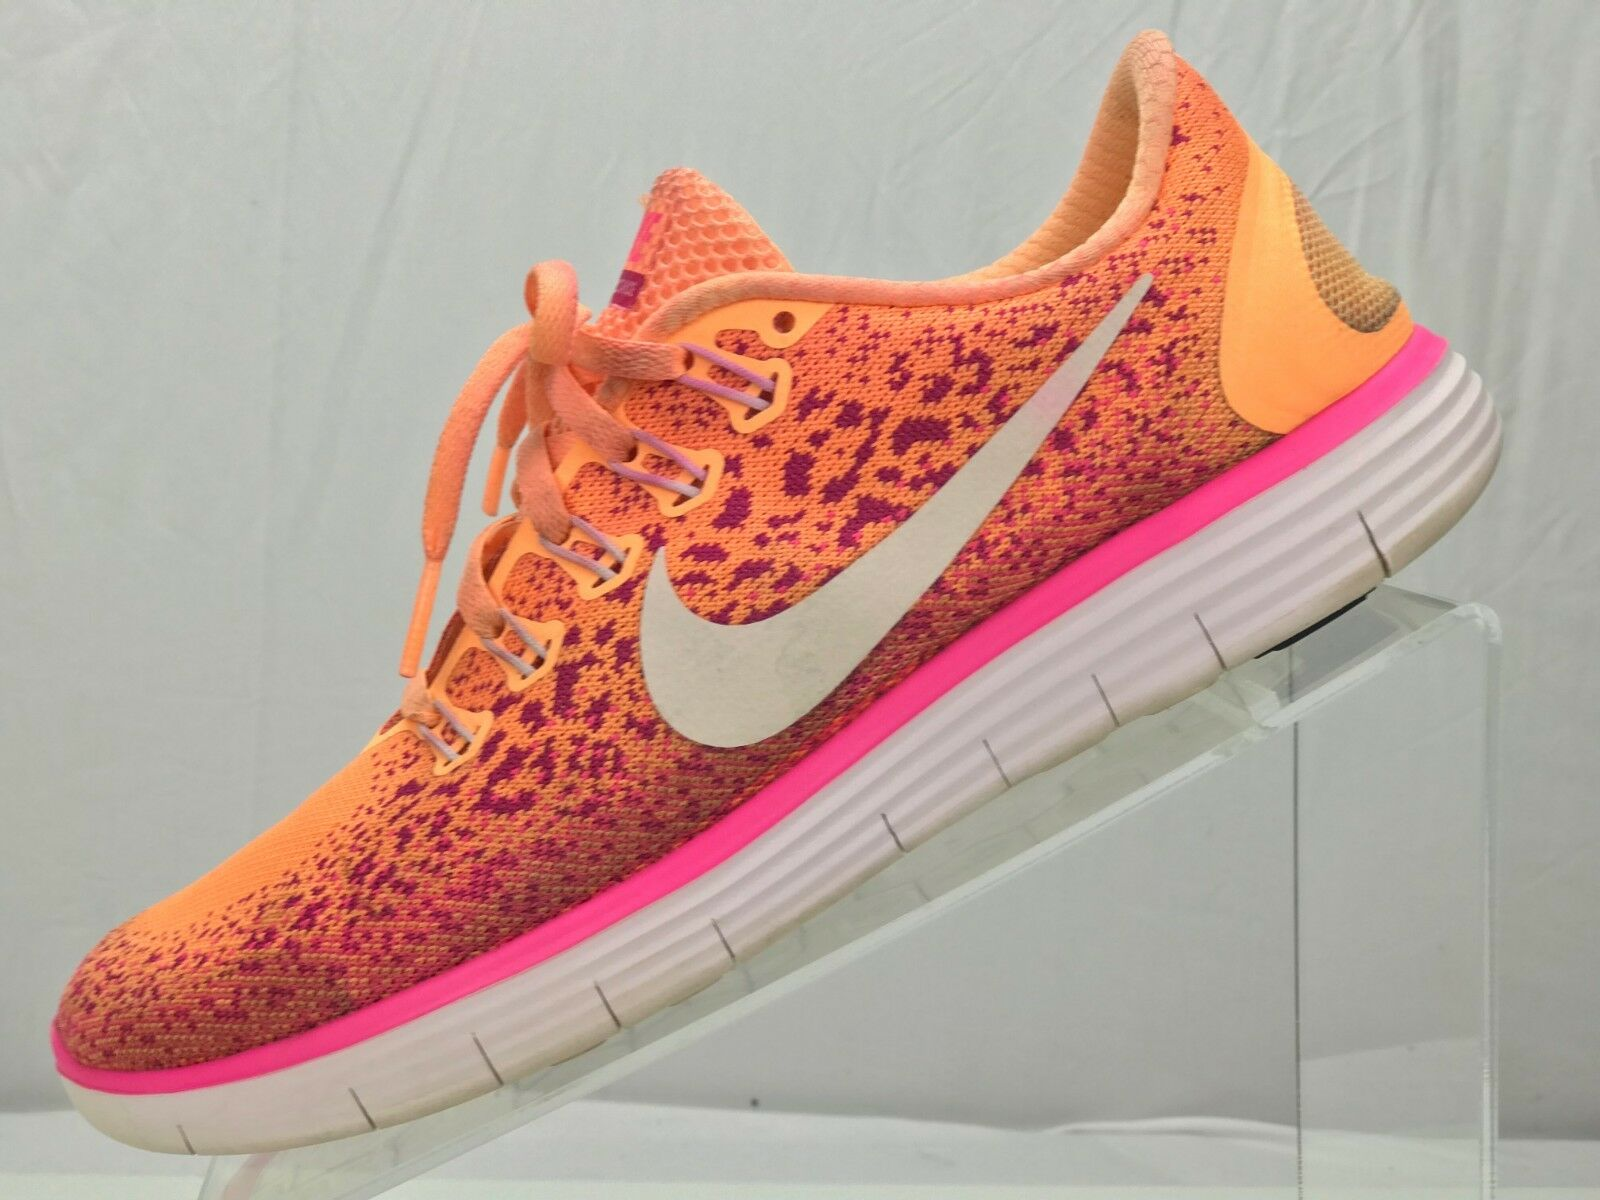 Nike Free RN Distance Running Shoes- Training Orange Athletic Sneakers Women's 9 Brand discount